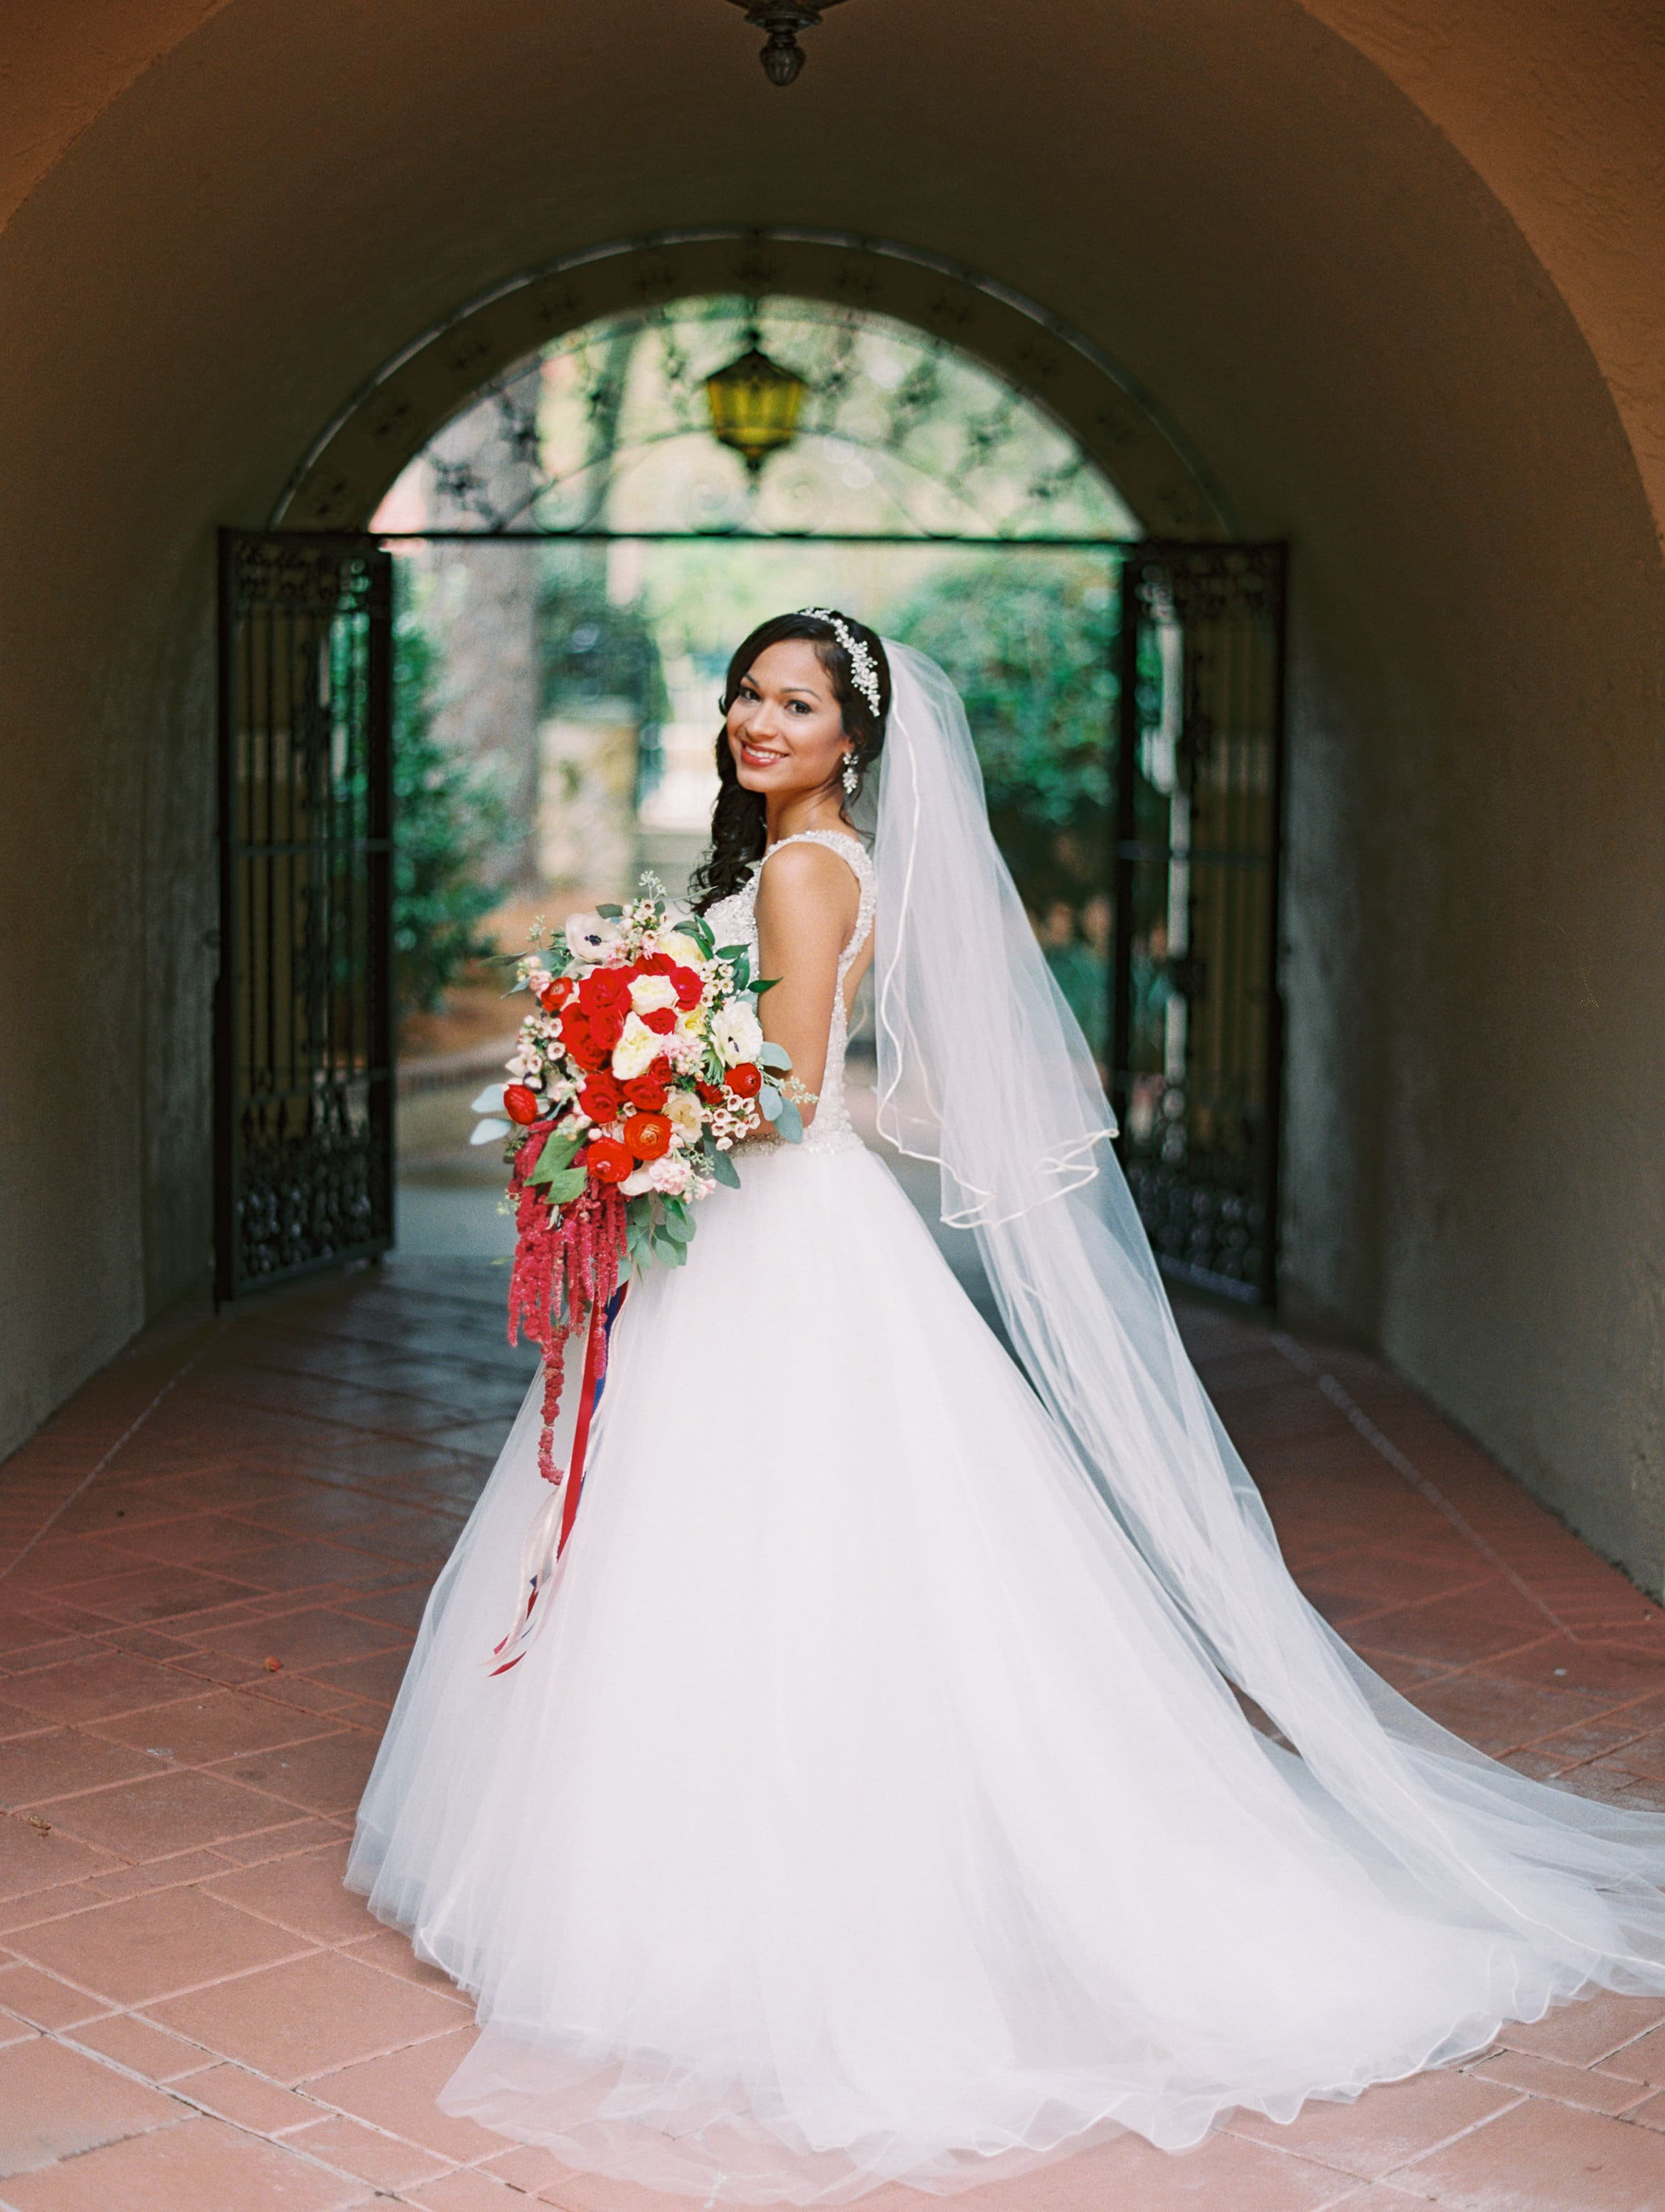 Lovely bride with cascading red bouquet in Spanish style architecture